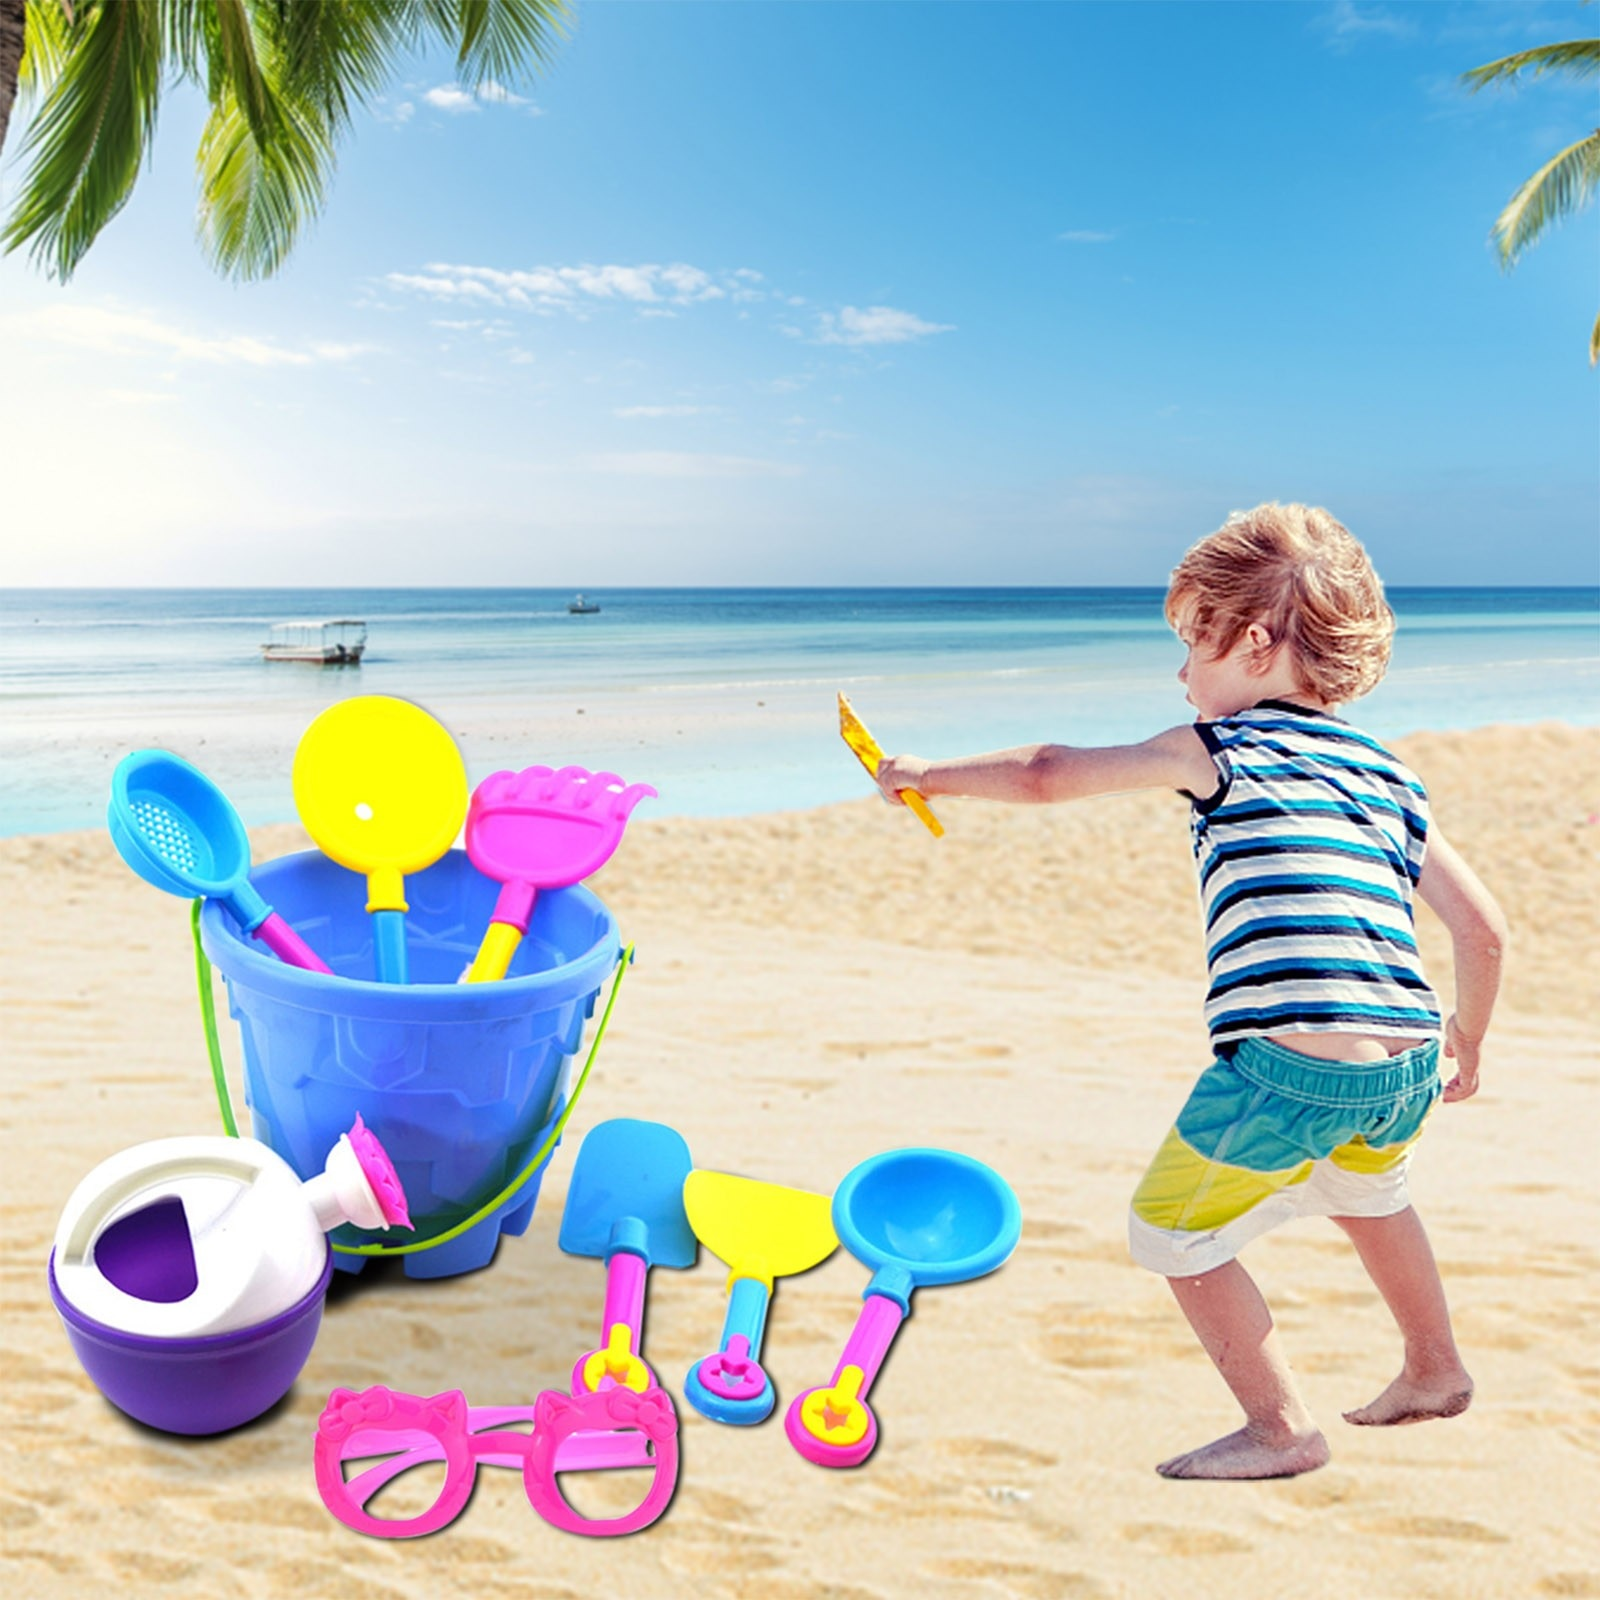 9 Piece Beach Toy Sand Set Bucket Sand Shovel Digging Sand Play Sandpit Toy For Kids Summer Outdoor Beach Gardening Toys Gift #5 starry sky sand beach toy 18 piece sand set magic space clay sand puzzle power toys